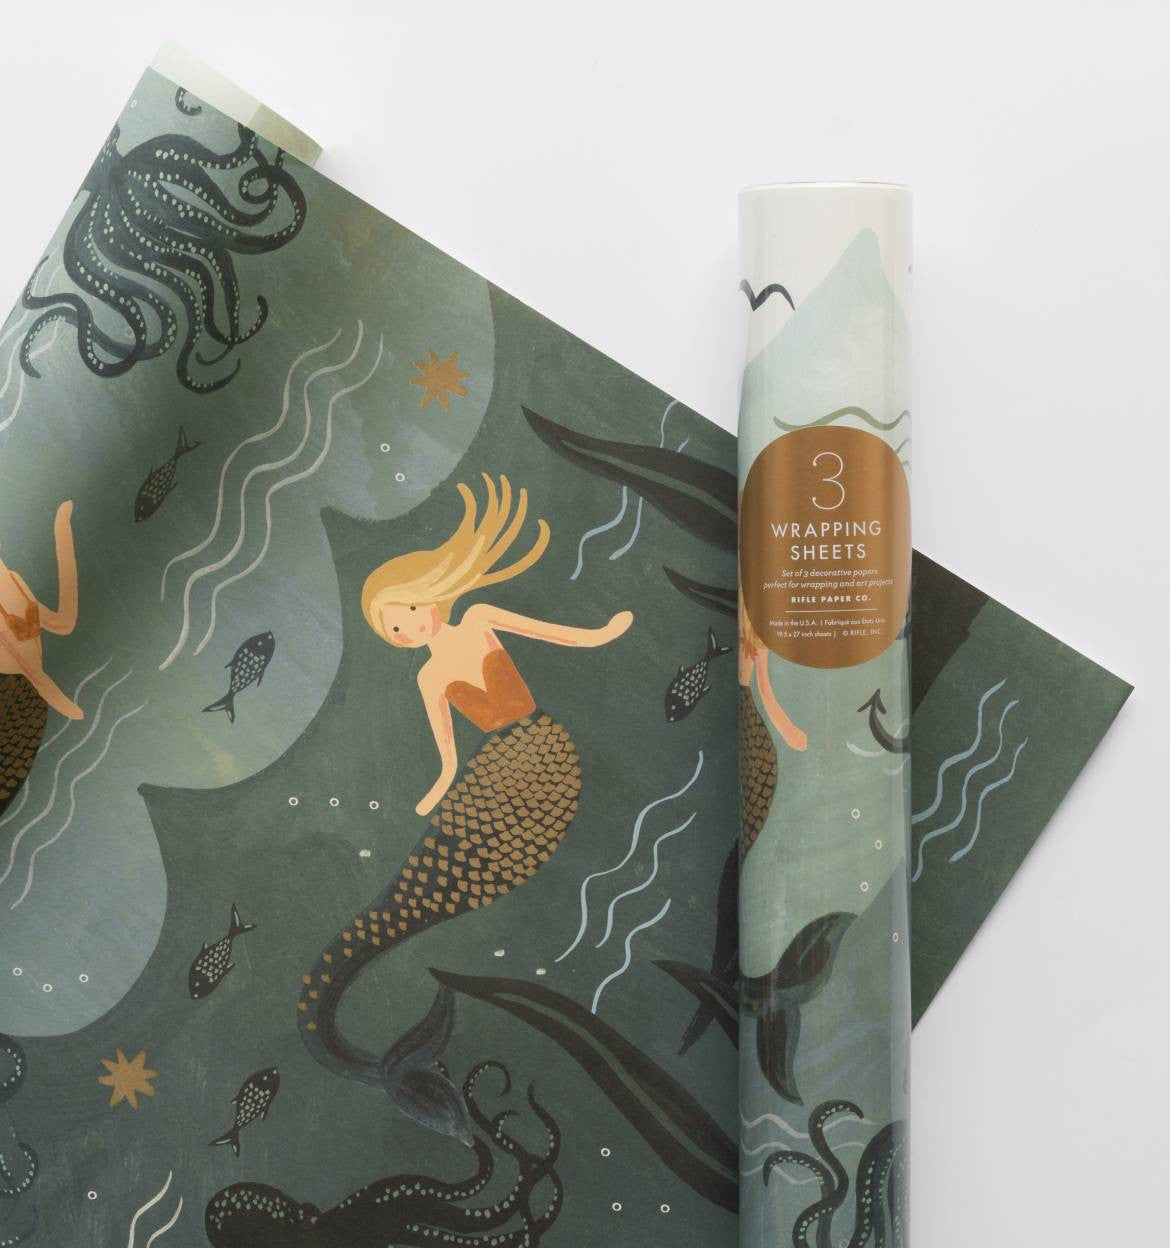 Rifle Paper Co. Mermaid Wrapping Sheets,  Roll of 3